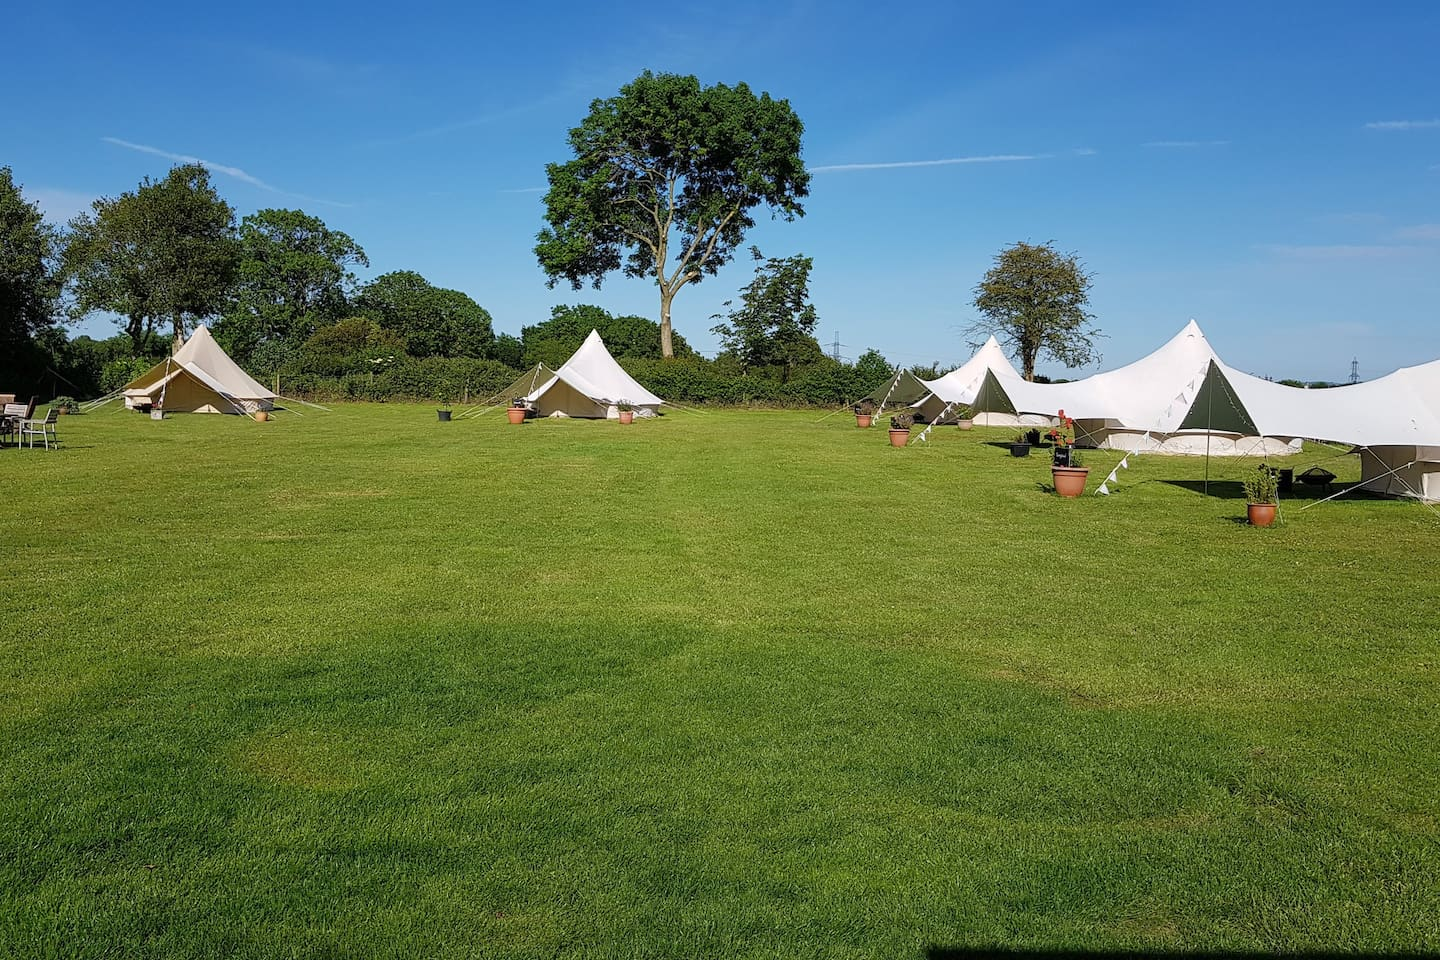 The campsite showing all 5 bell tents